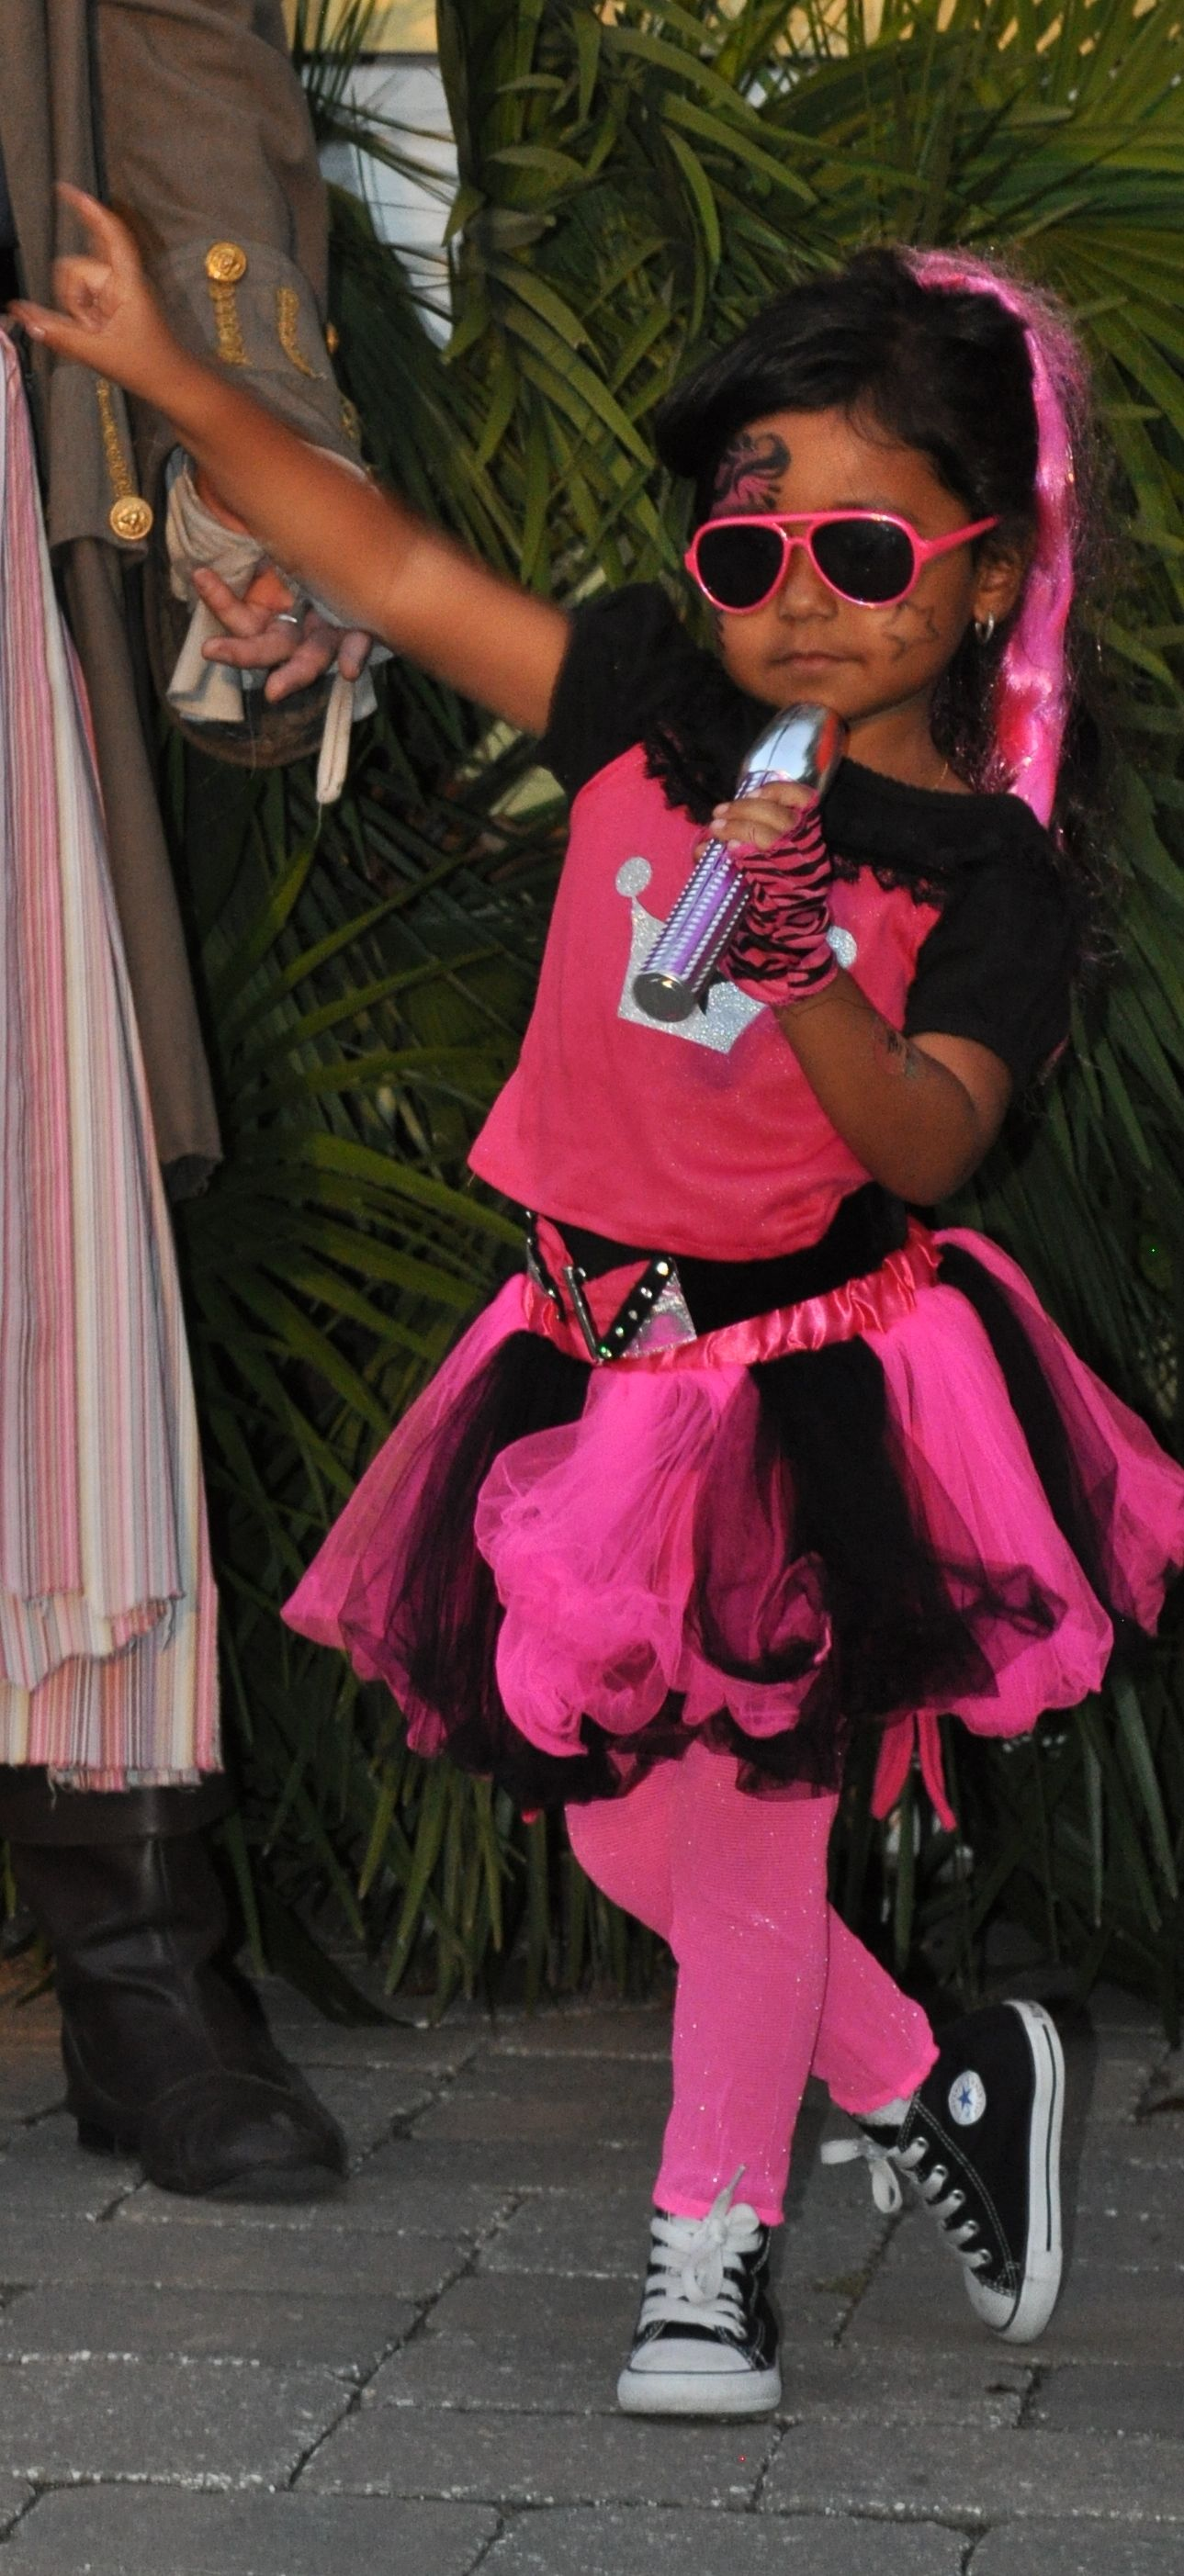 This little pop star showed a lot of personality during the costume contest at Boo at the Zoo!